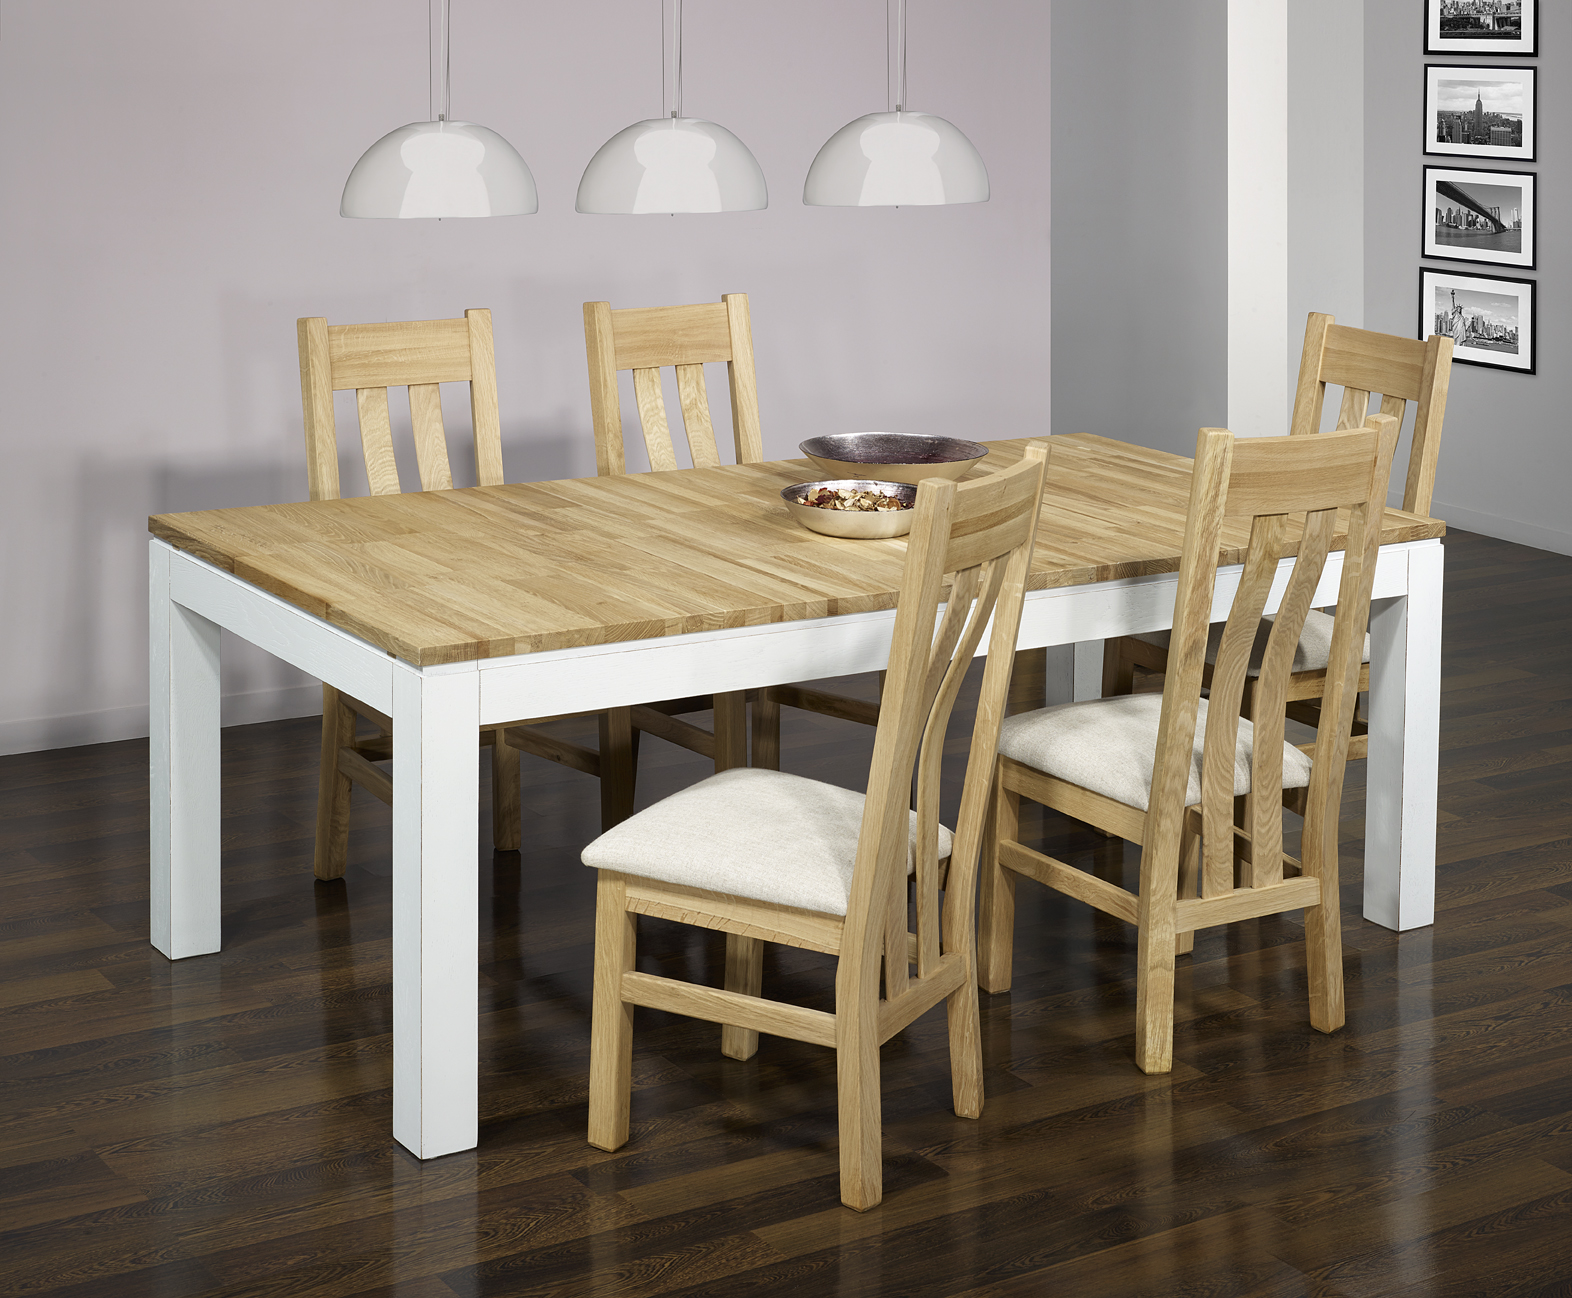 table de repas rectangulaire alexandre 200x100 en ch ne ligne contemporaine version ecologique. Black Bedroom Furniture Sets. Home Design Ideas